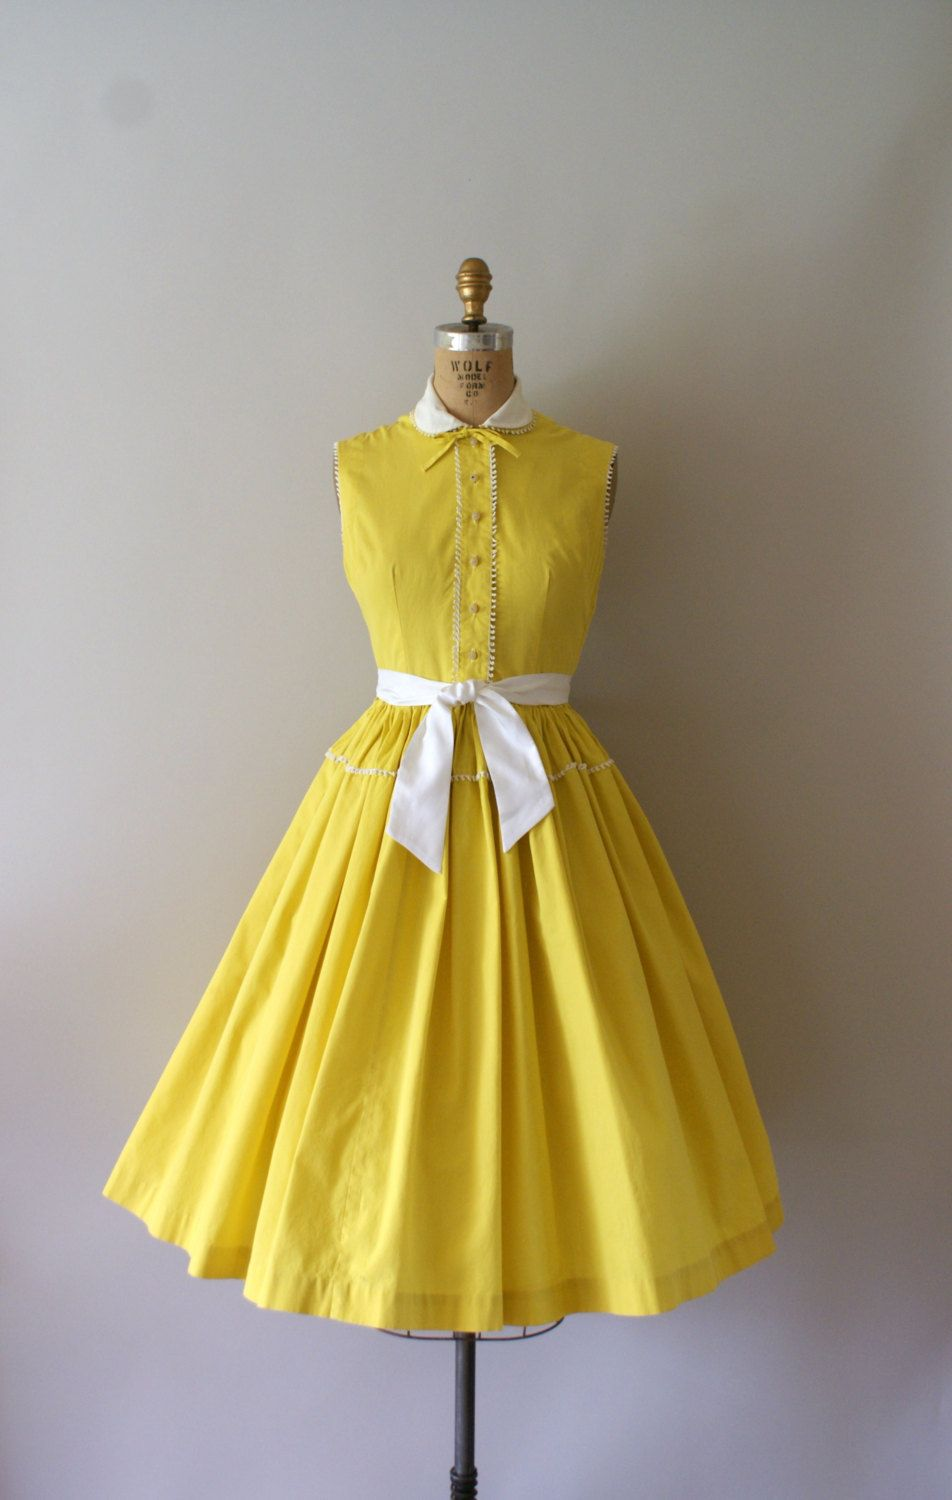 Reserved Listing Vintage 1950s Dress 50s Yellow Cotton Etsy Vintage 1950s Dresses Vintage Dresses Dresses [ 1500 x 952 Pixel ]